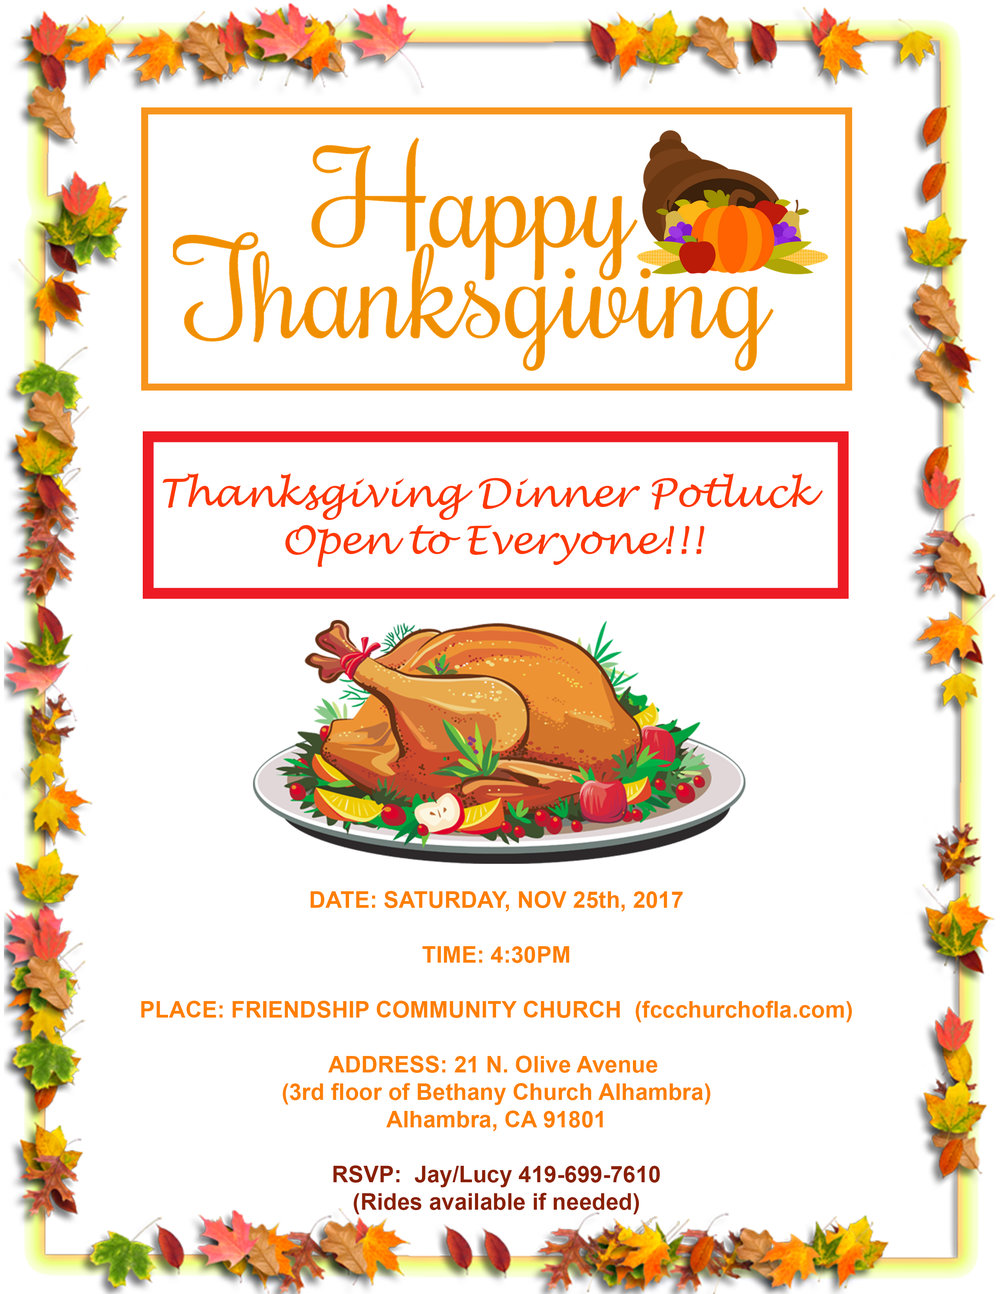 ThanksgivingFlyer_2017(1).jpg